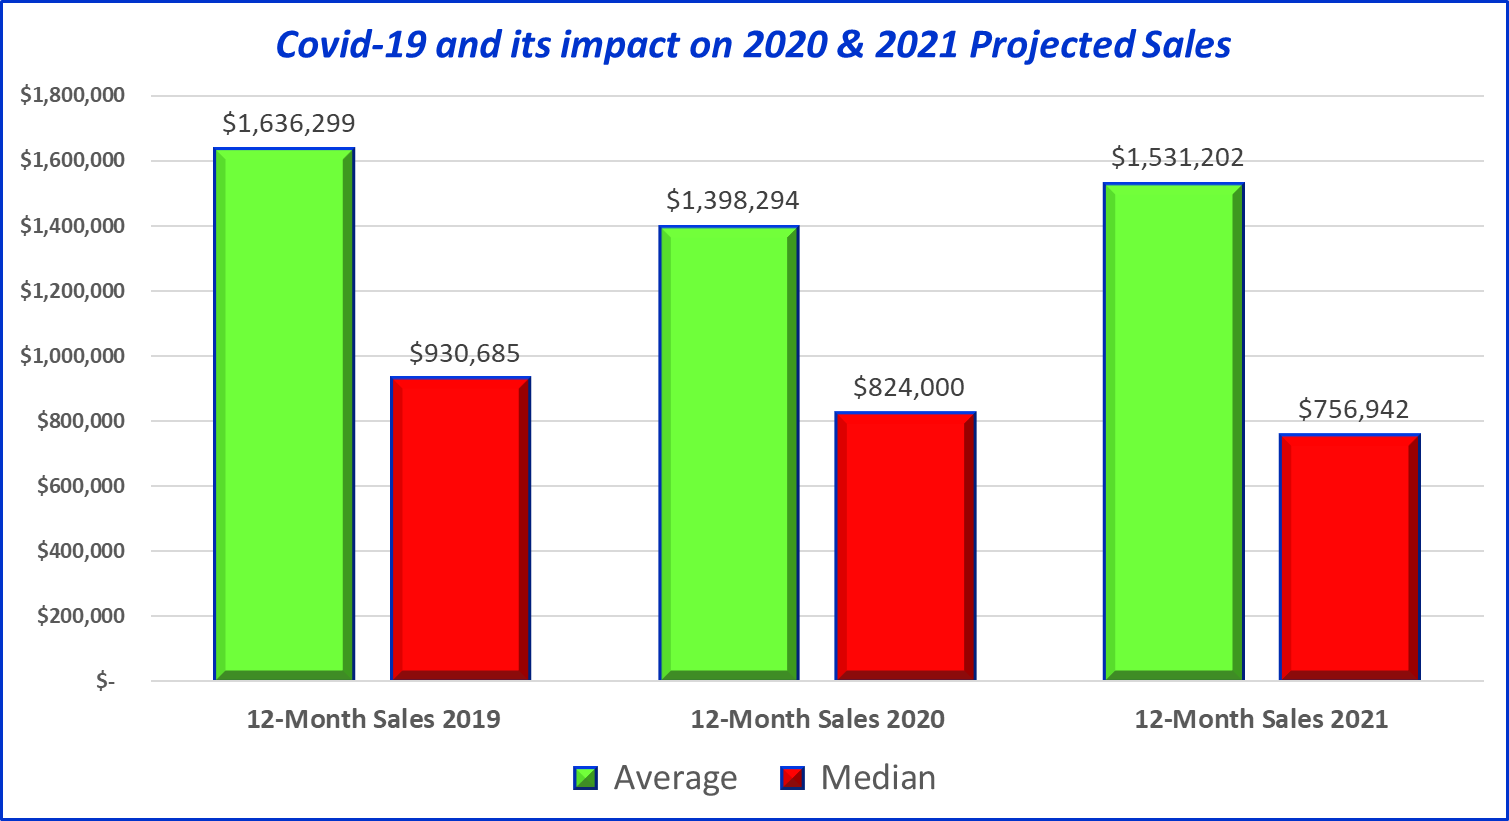 Projected sales for 2020 and 2021